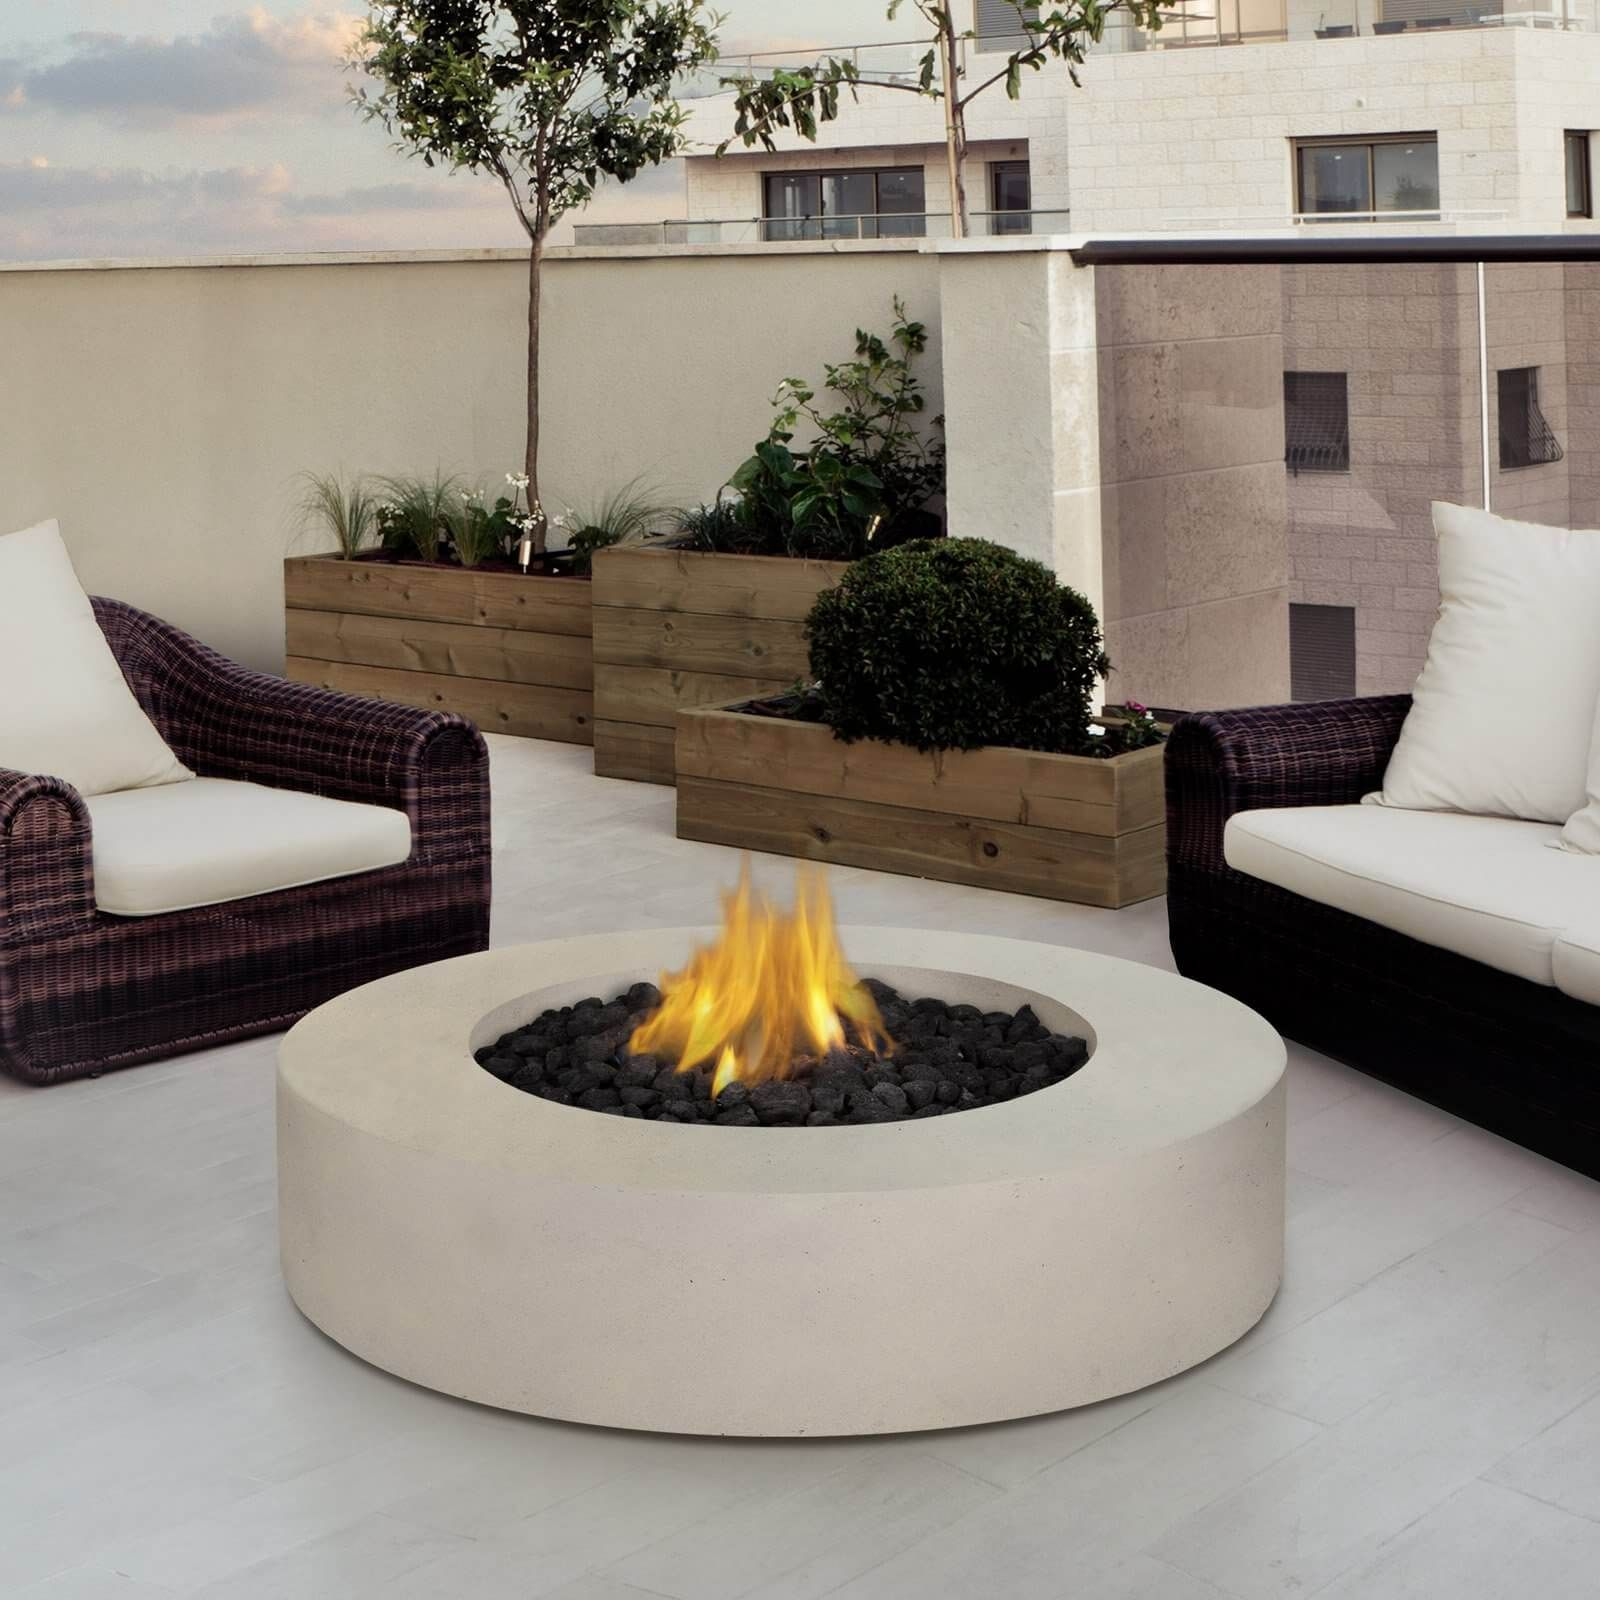 Top 15 Types Of Propane Patio Fire Pits With Table Buying Guide Propane Fire Pit Table Backyard Fire Round Propane Fire Pit